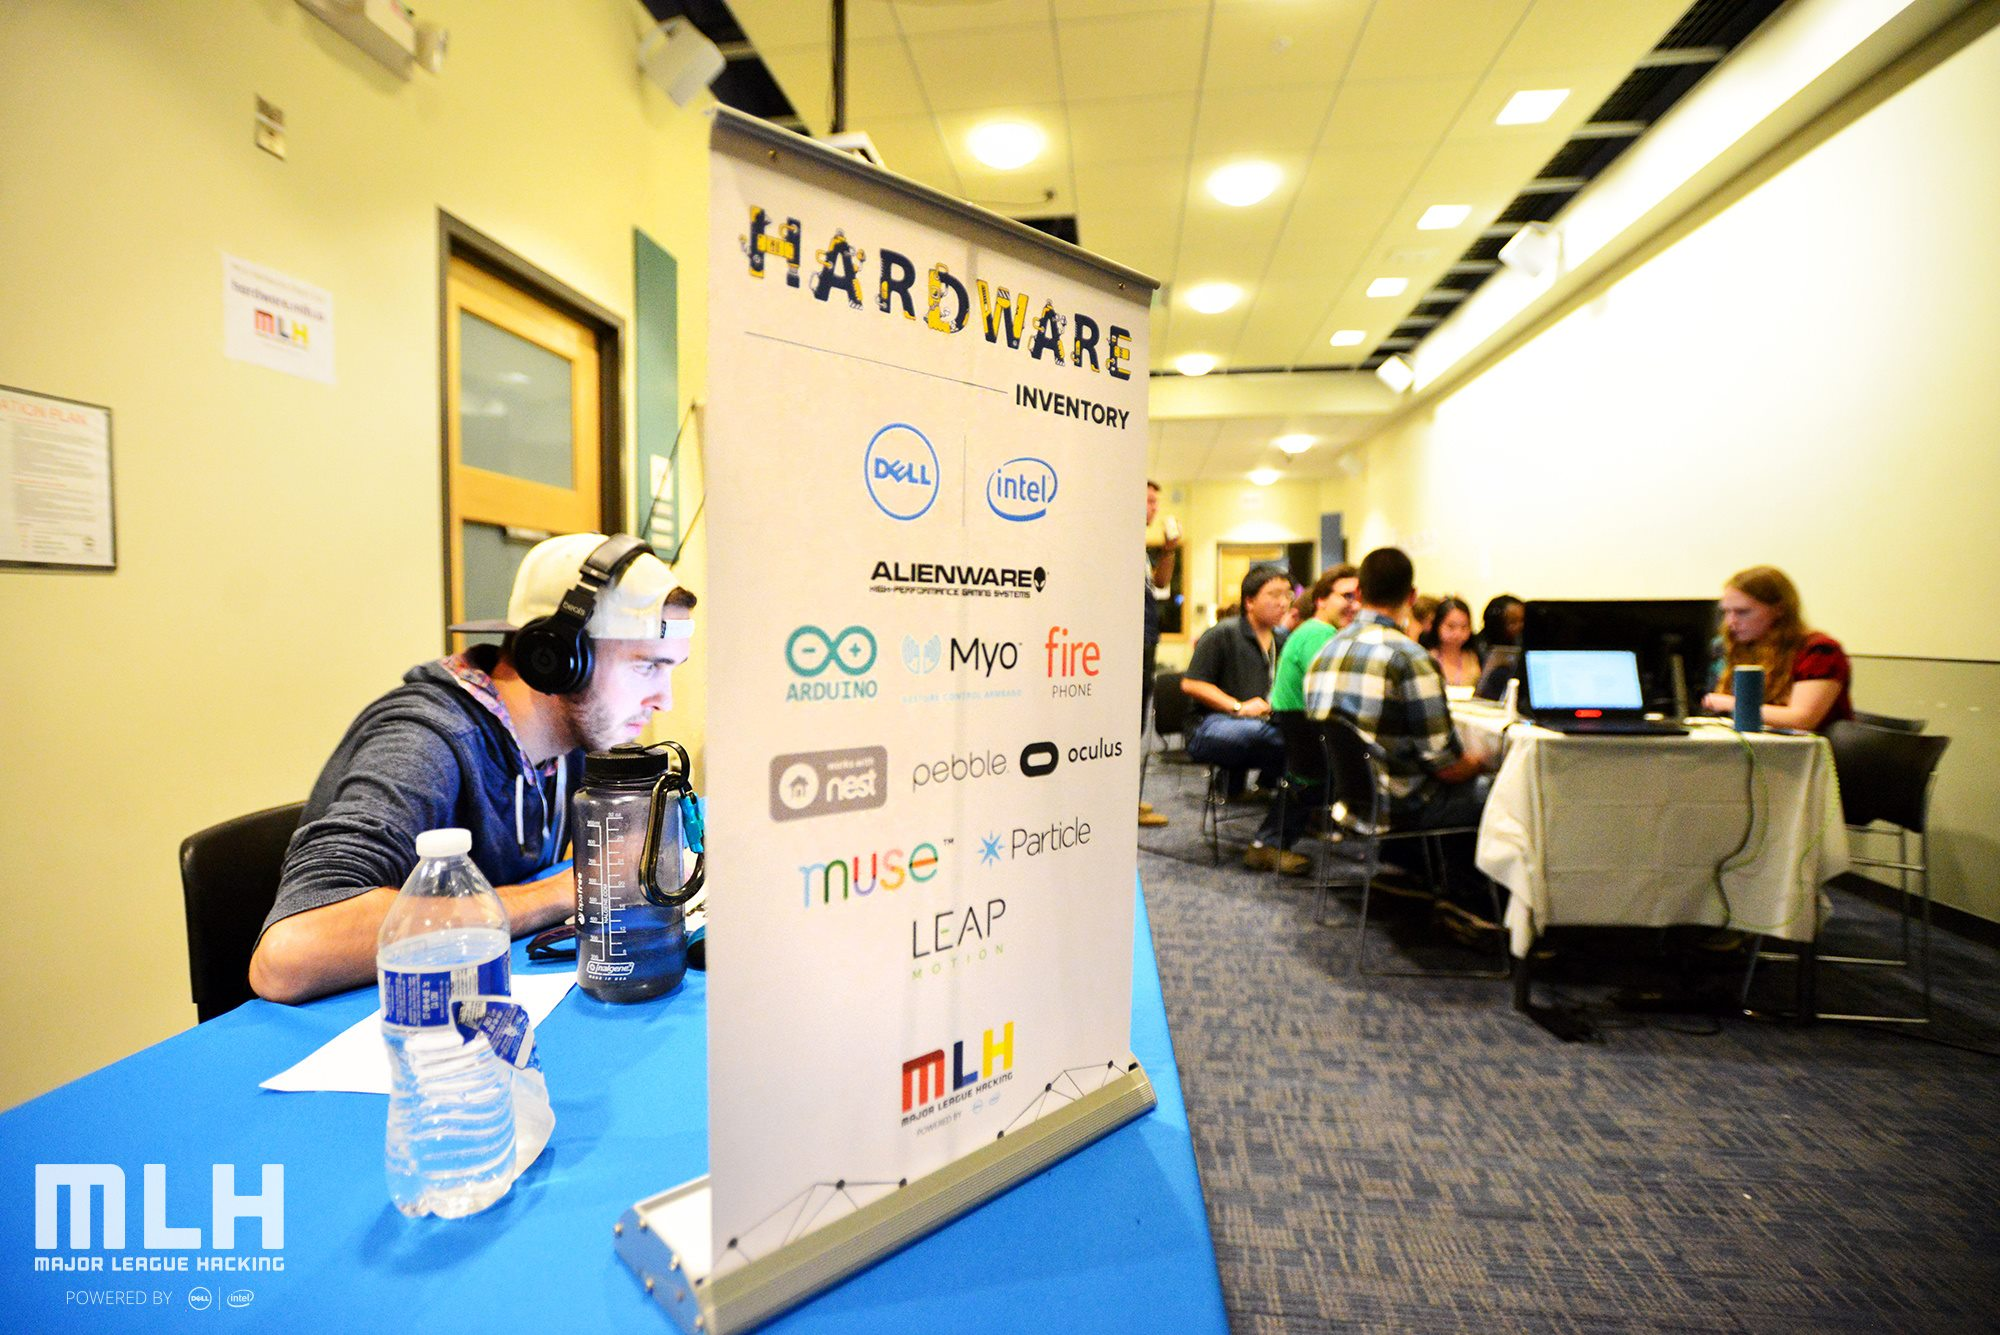 Photos of Major League Hacking's hardware lab.